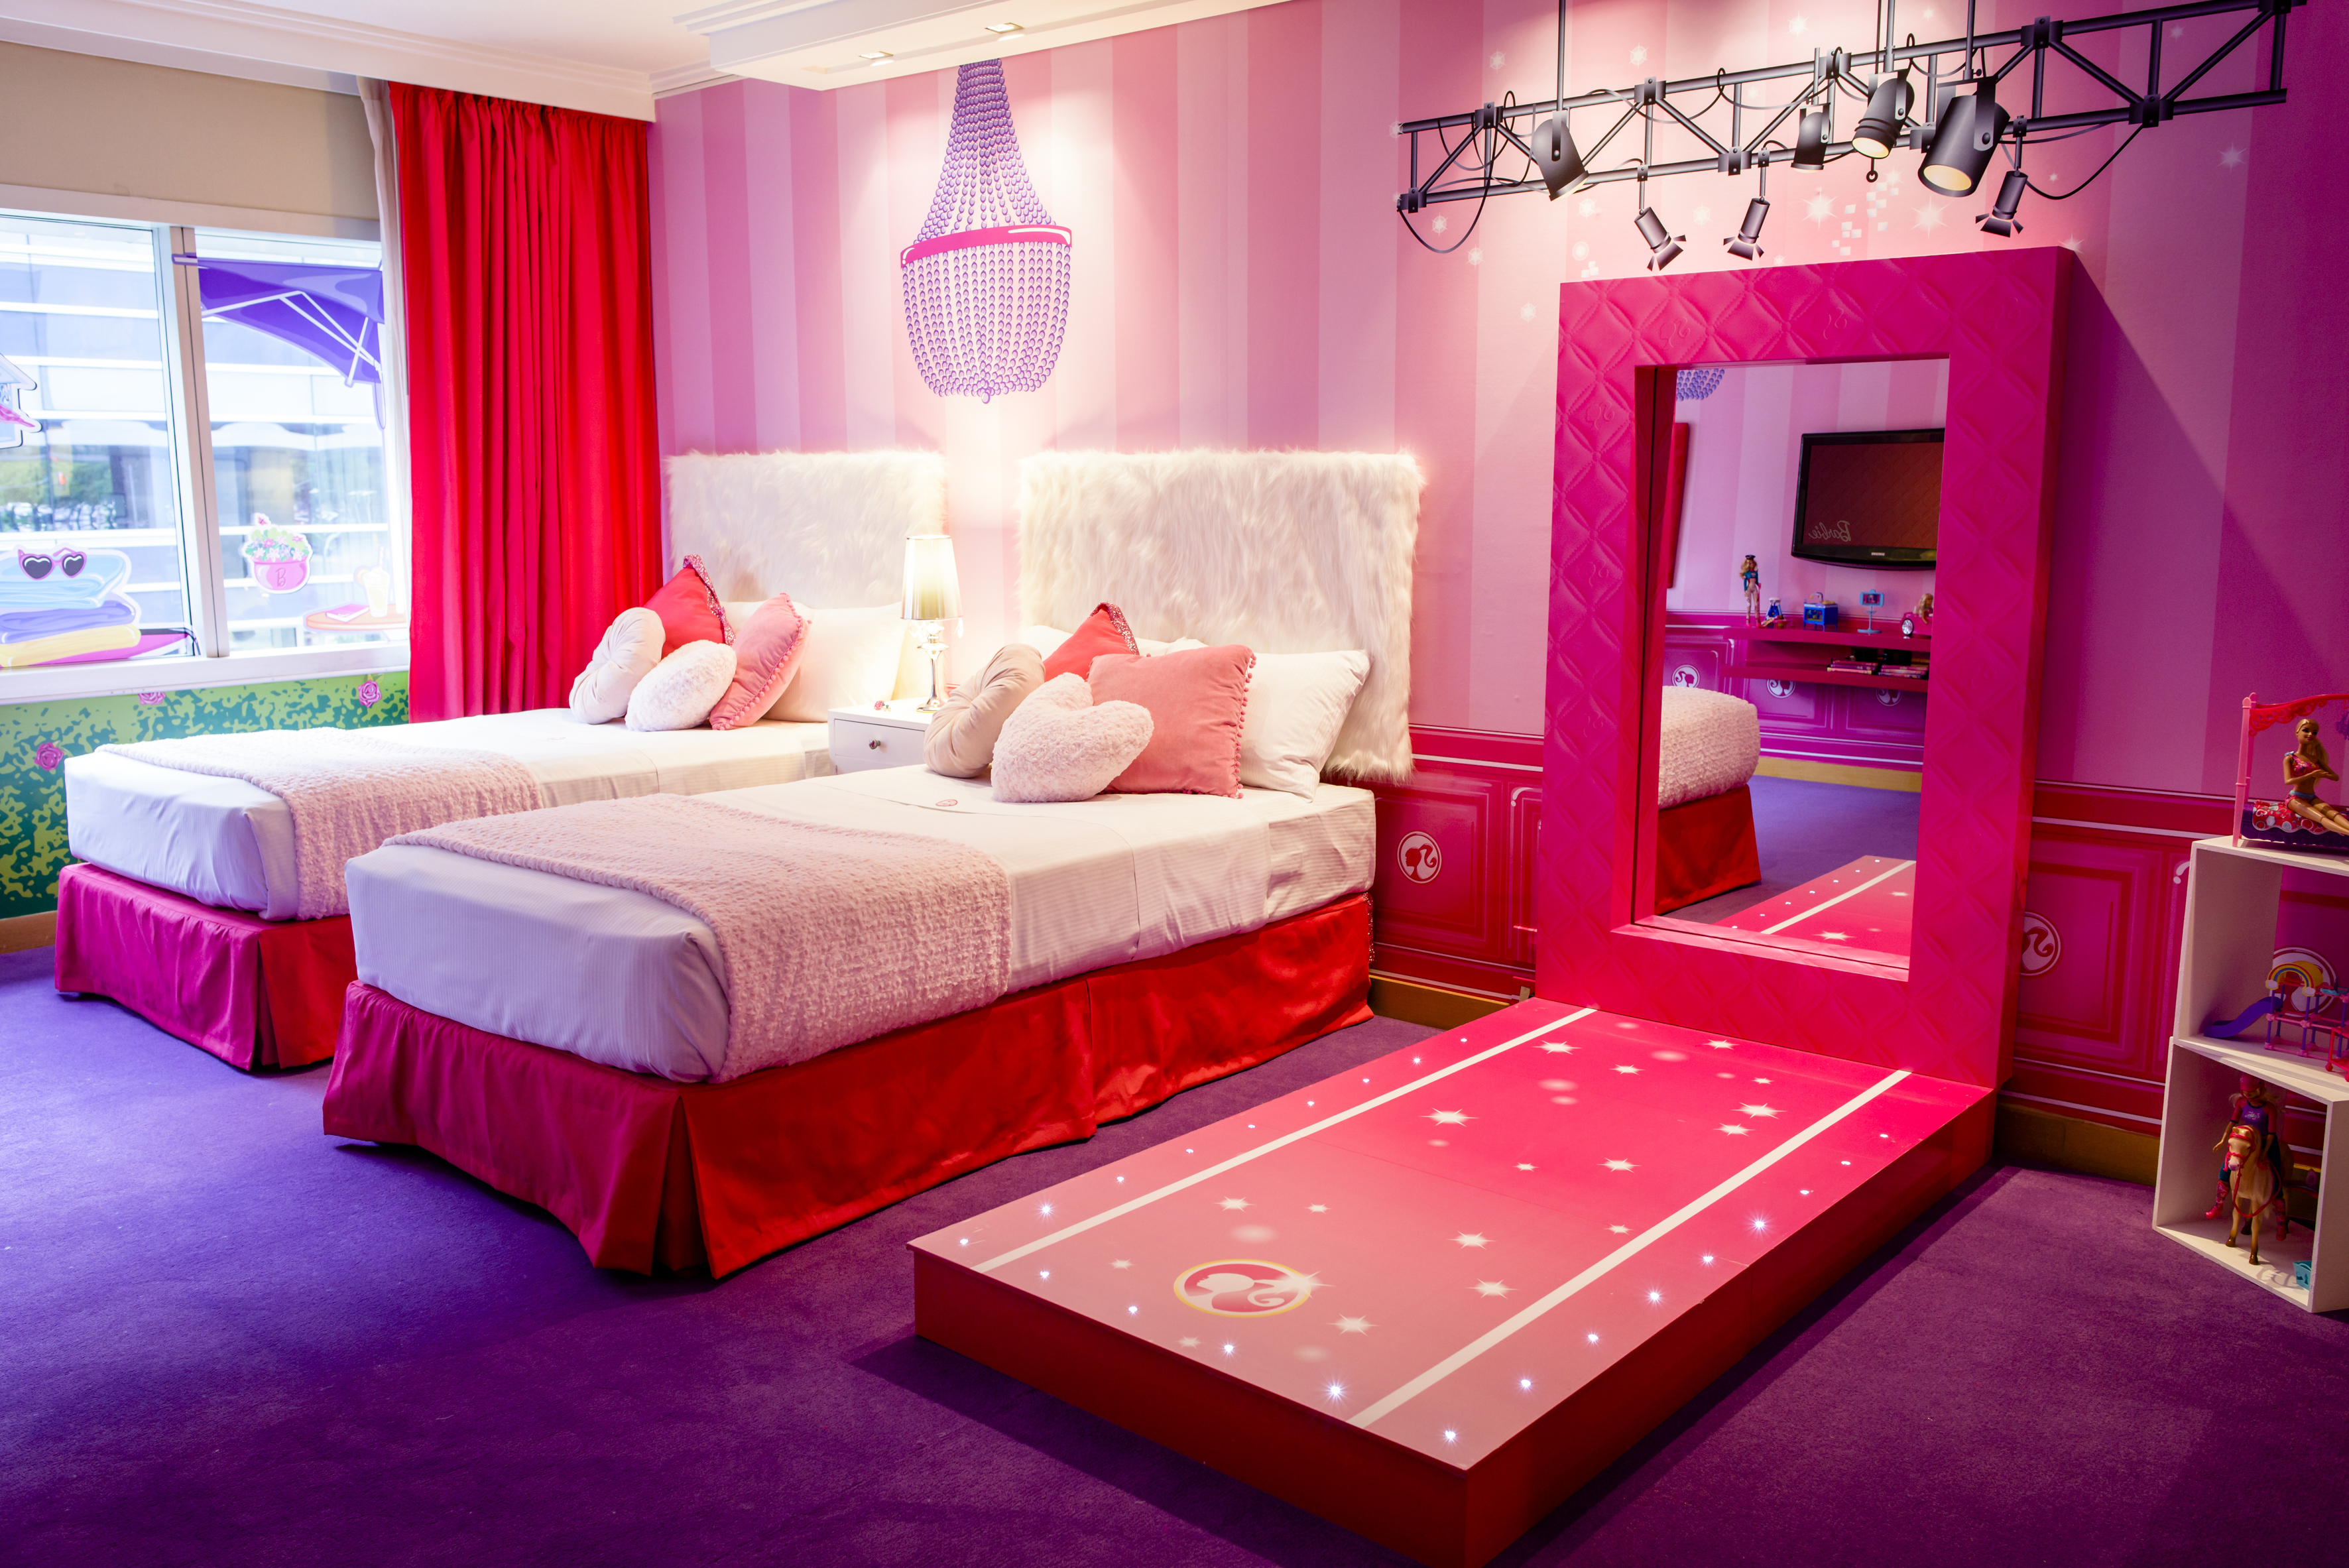 Dormitorio Barbie Barbie Tendrá Invitadas De Lujo En Su Suite Raspberry